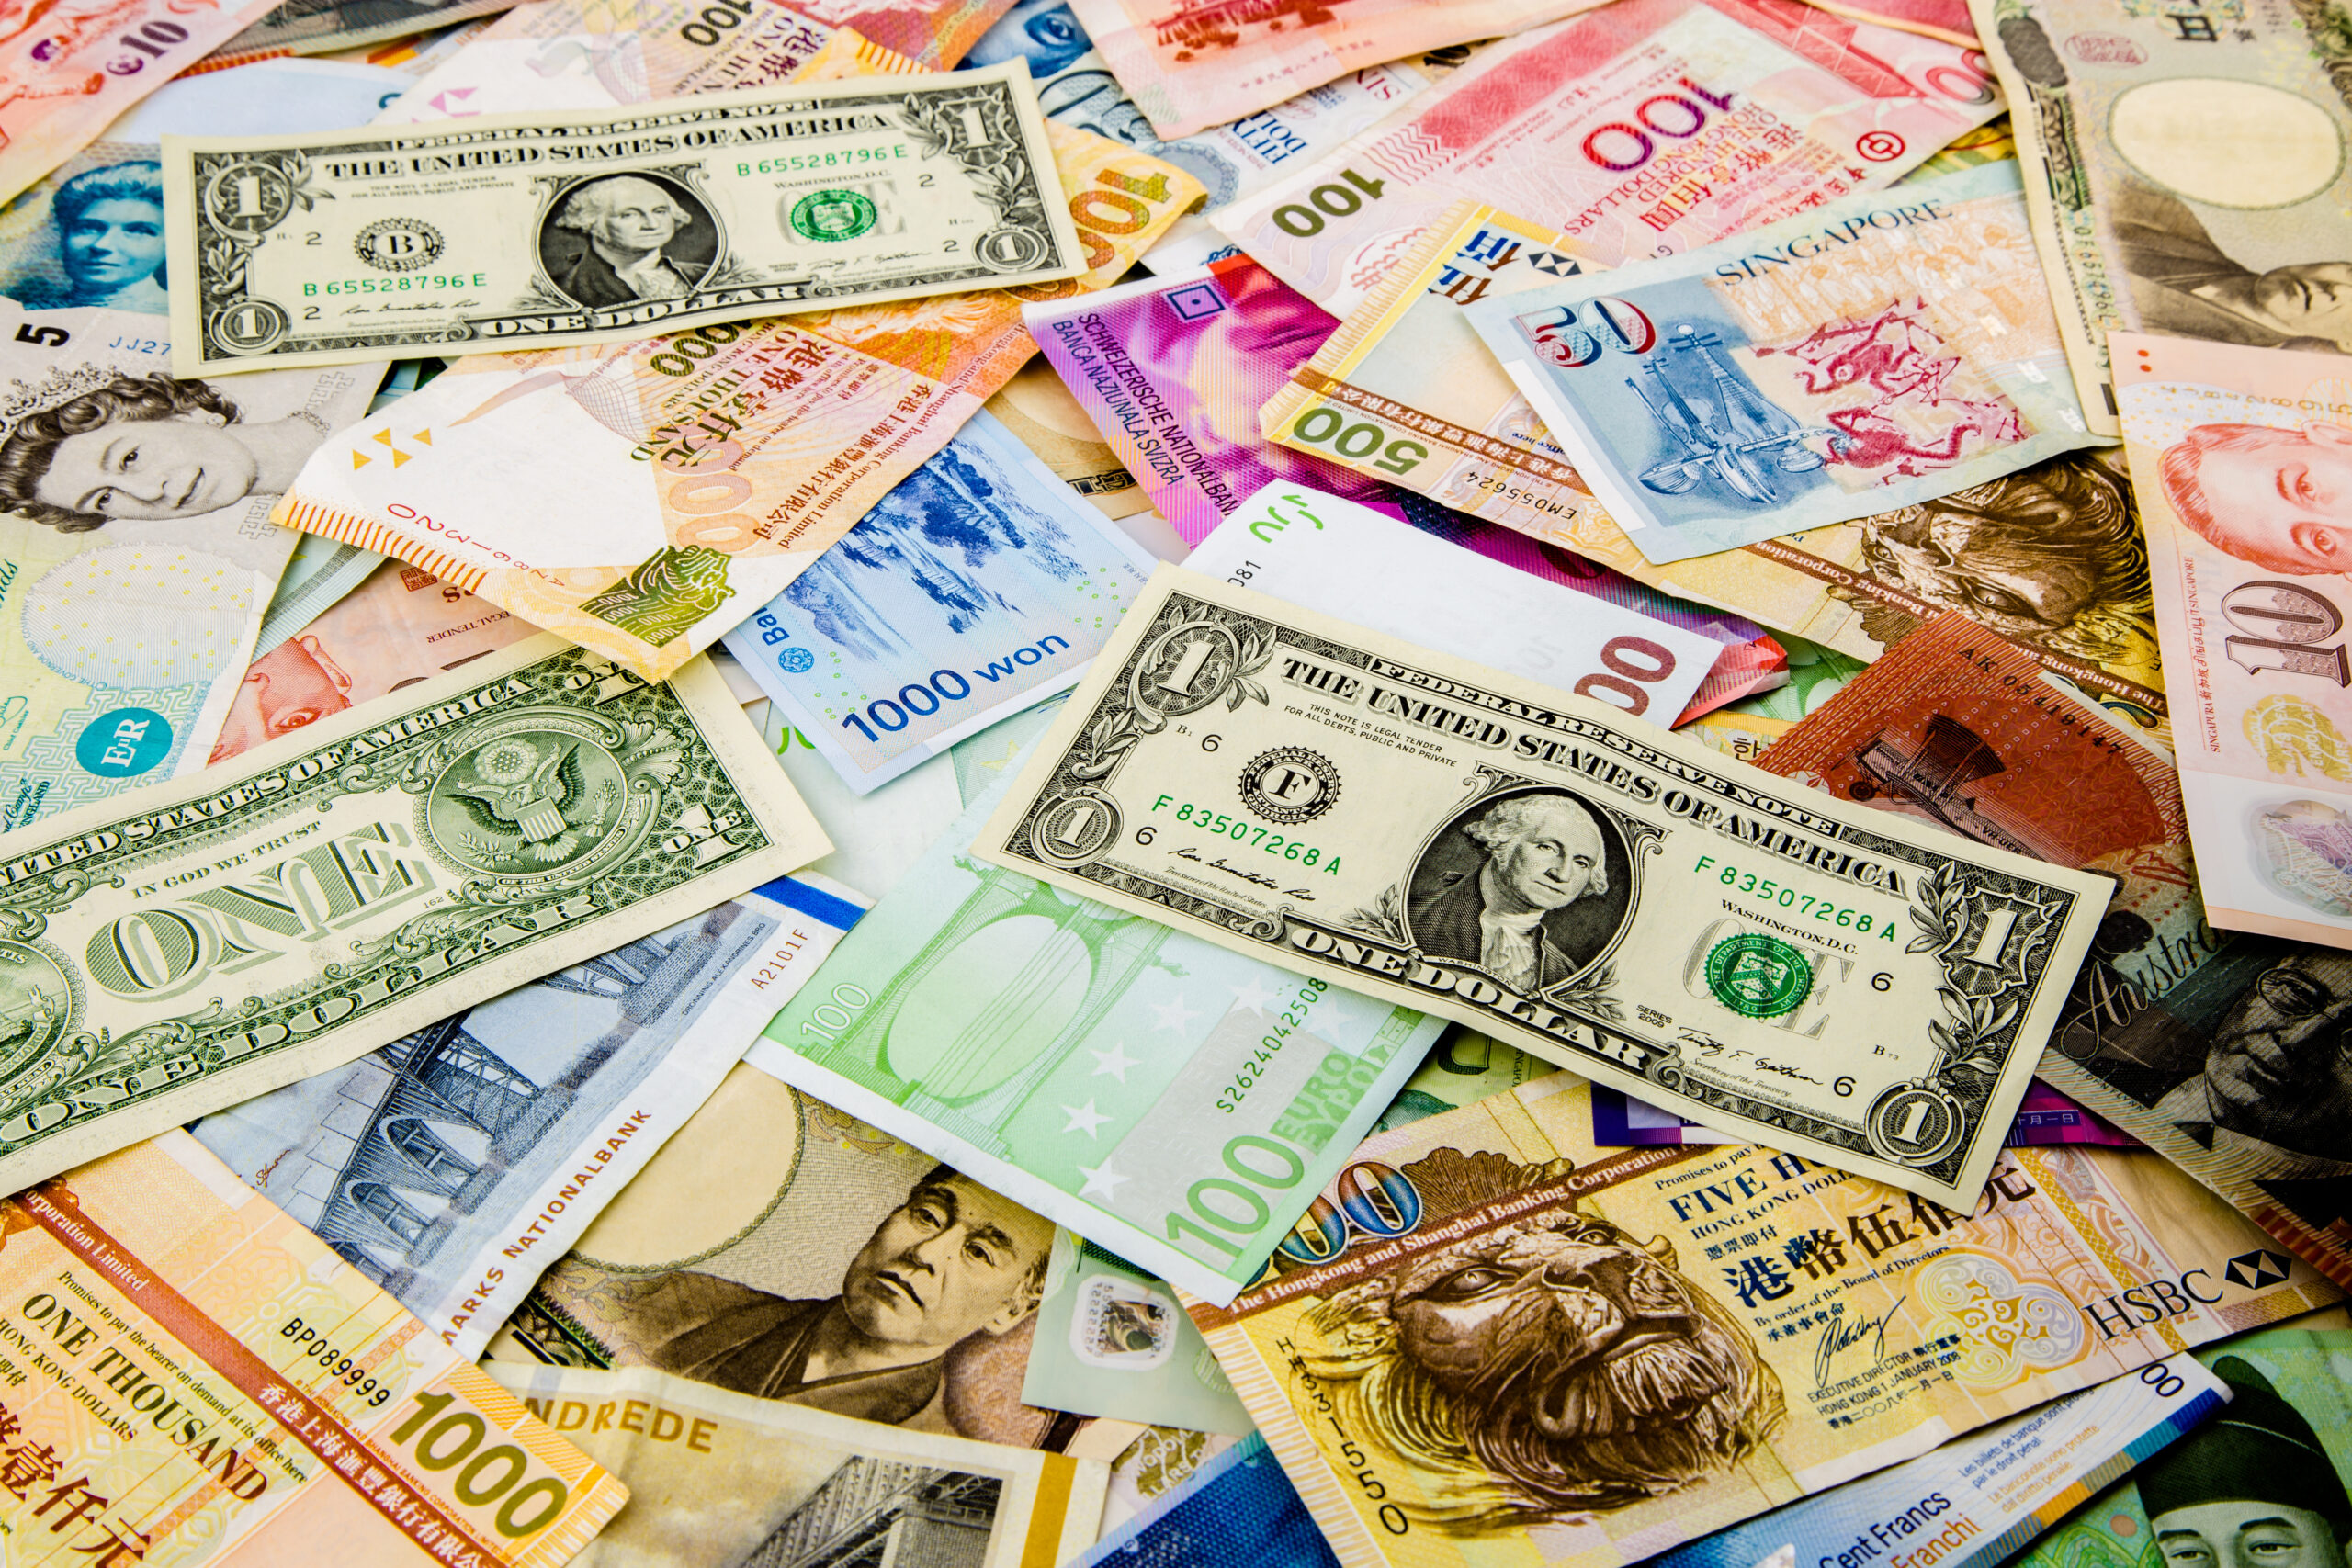 Fiat Currency Versus Digital (Crypto) Currency